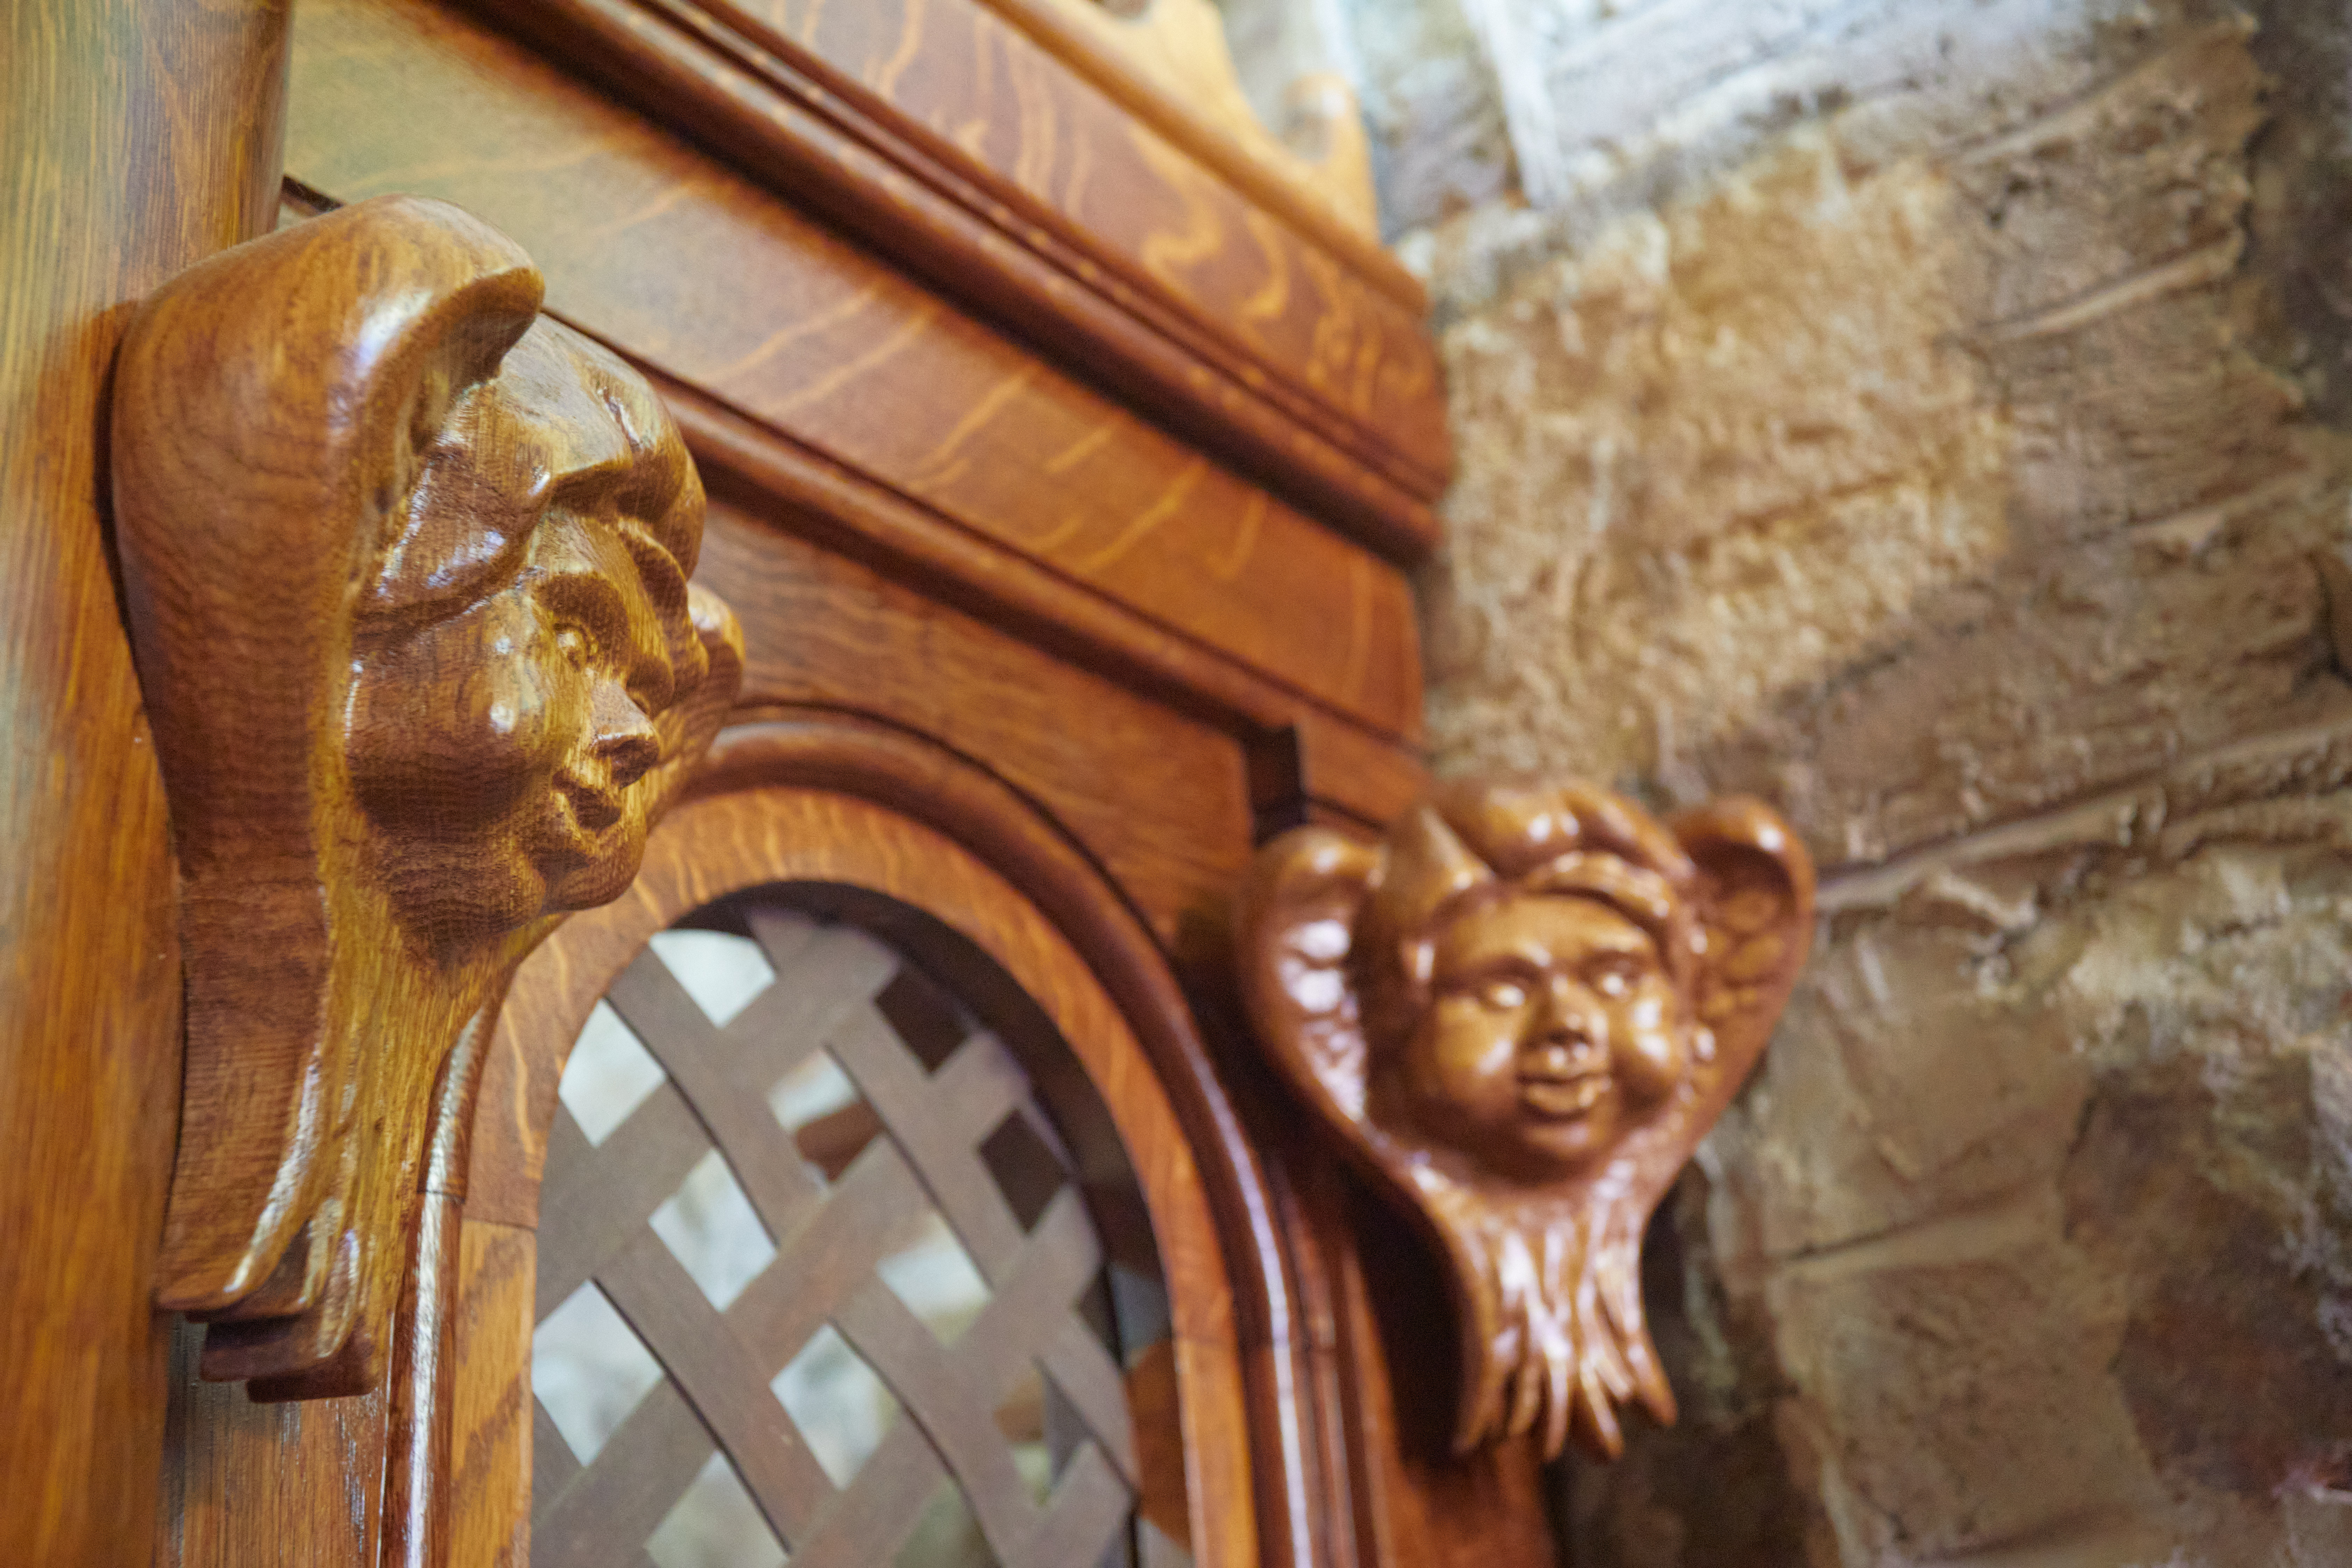 Cherub faces carved into wood on side of confessional.